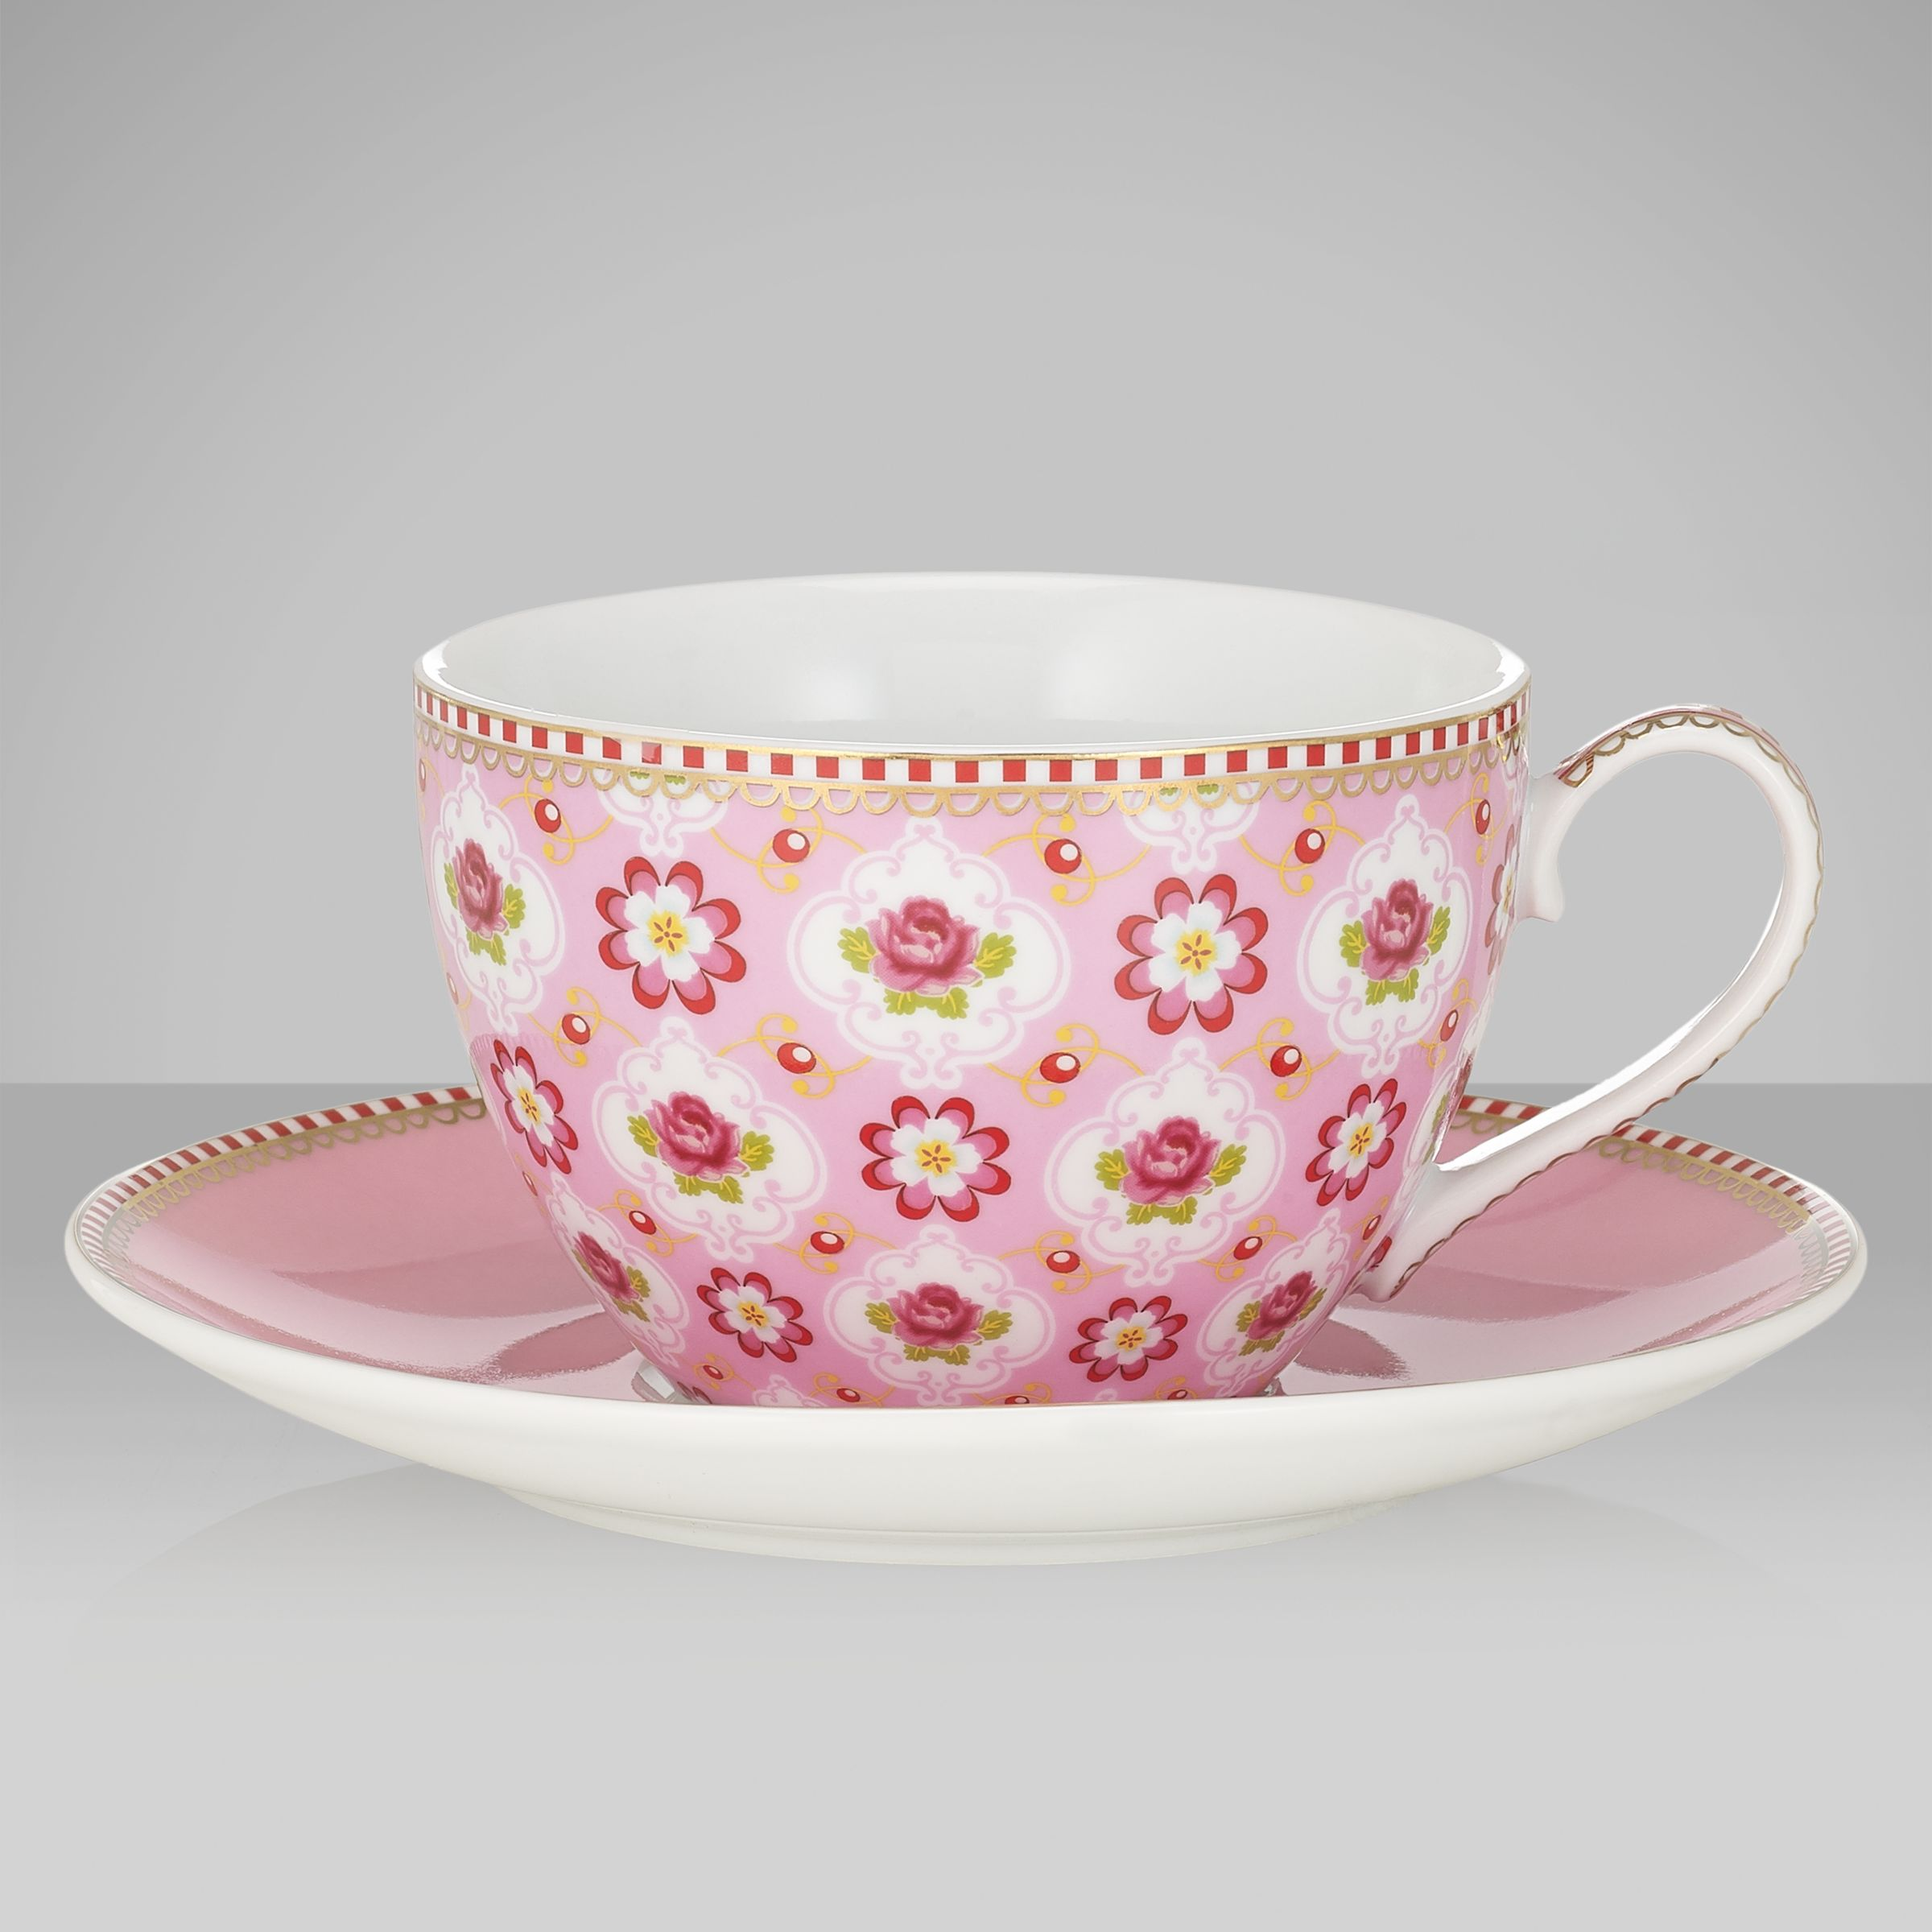 Blossom Cup & Saucer, 0.3L, Pink 435617